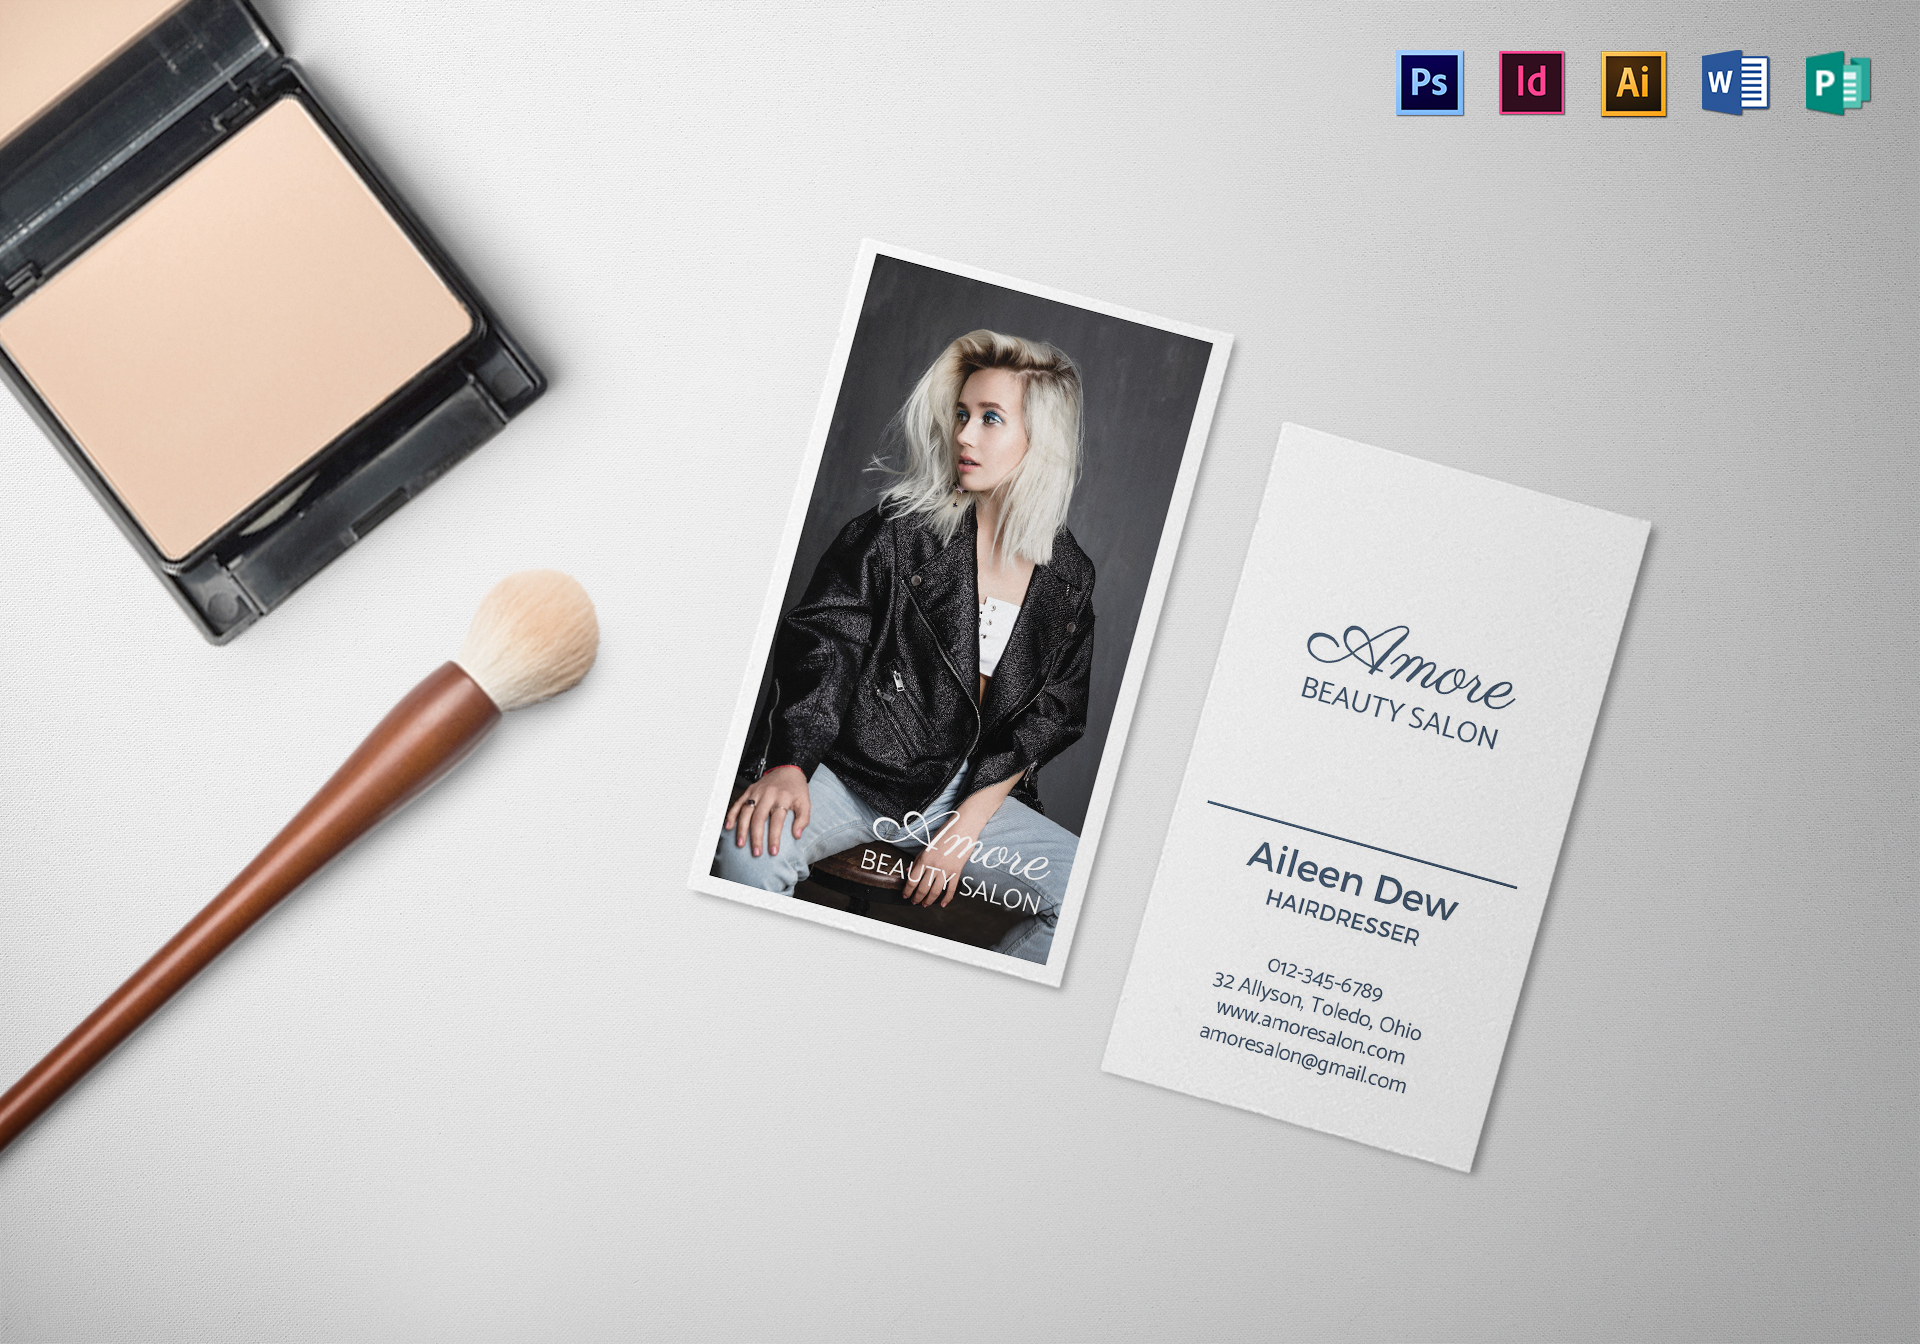 Beauty salon business card template in psd word publisher beauty salon business card template accmission Image collections